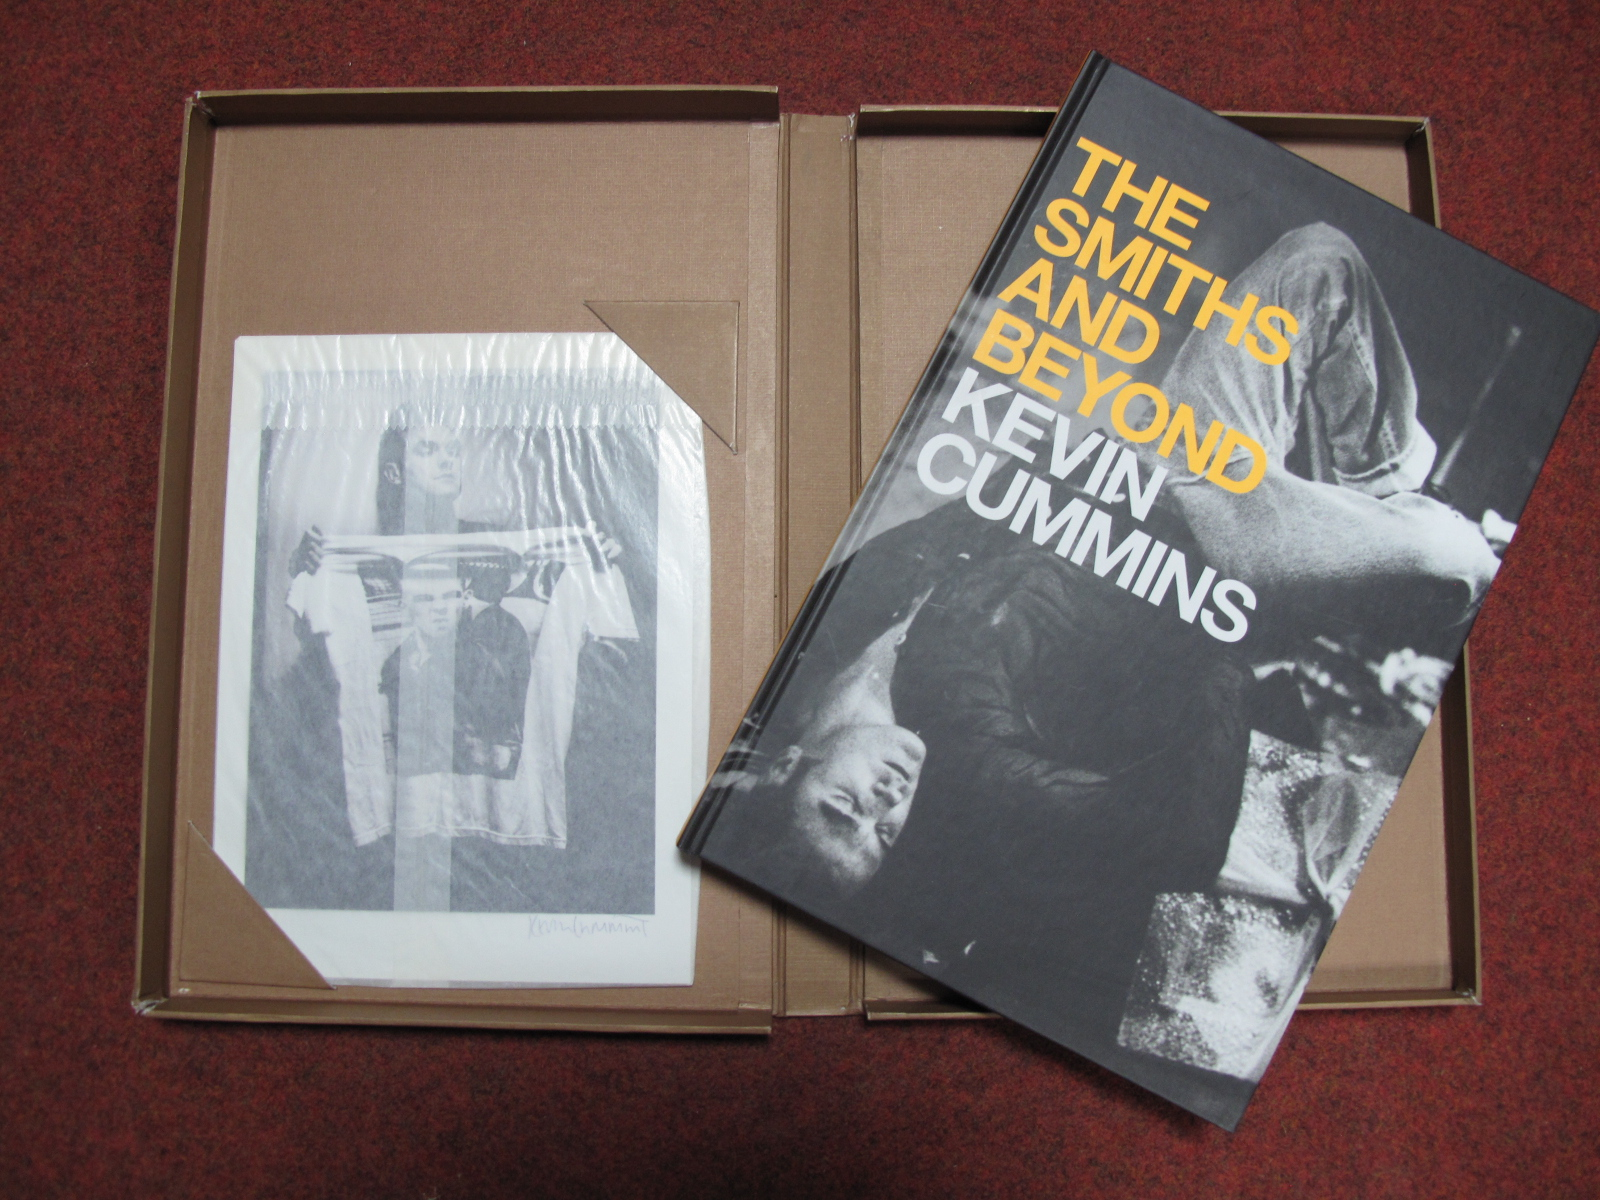 Lot 12A - Kevin Cummins - 'The Smiths And Beyond', Author Signed Limited Edition Hardback Pictorial Book,